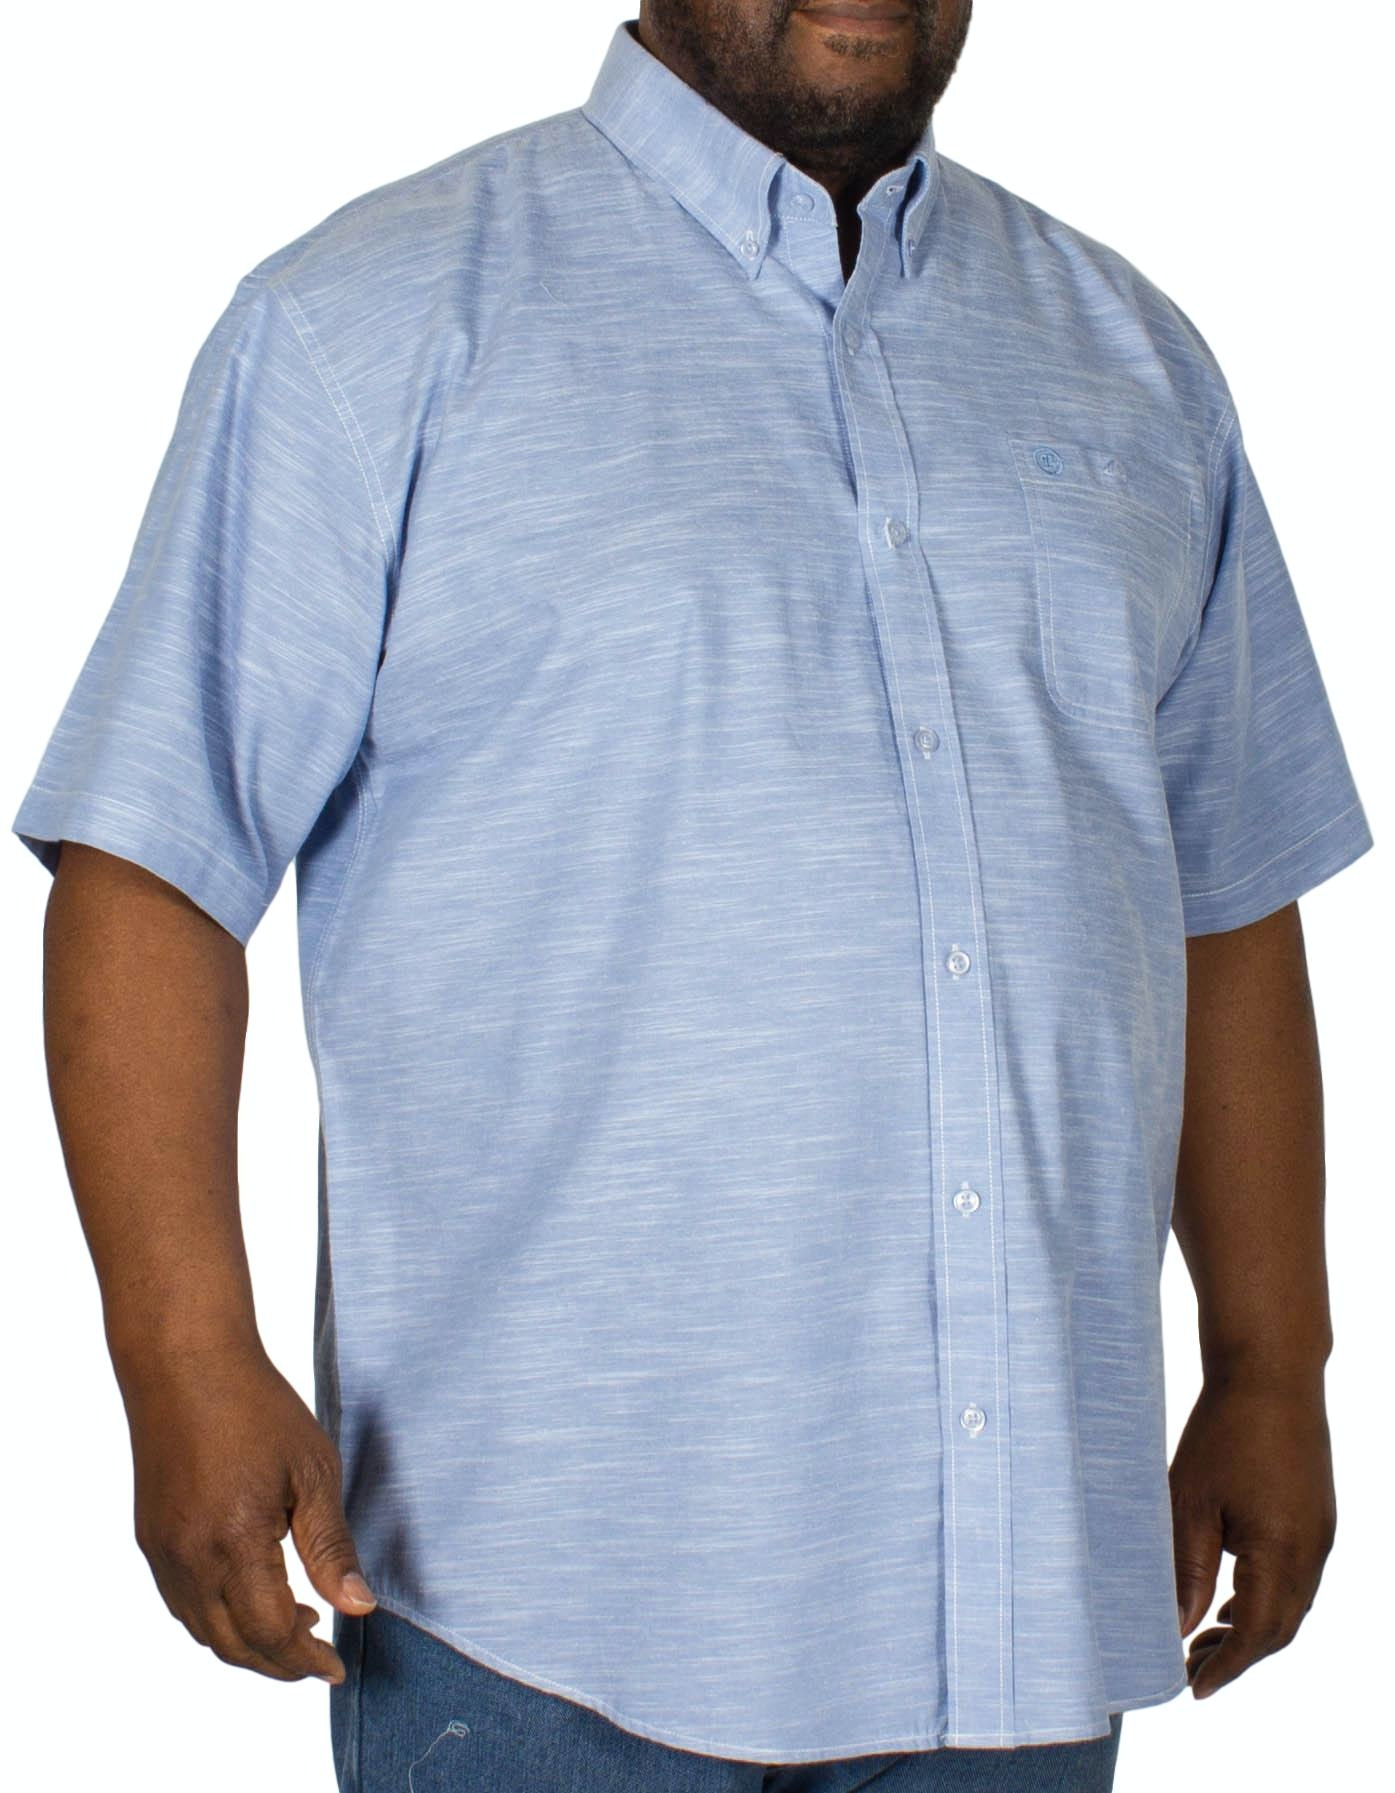 Espionage Linen Look Short Sleeve Shirt Blue